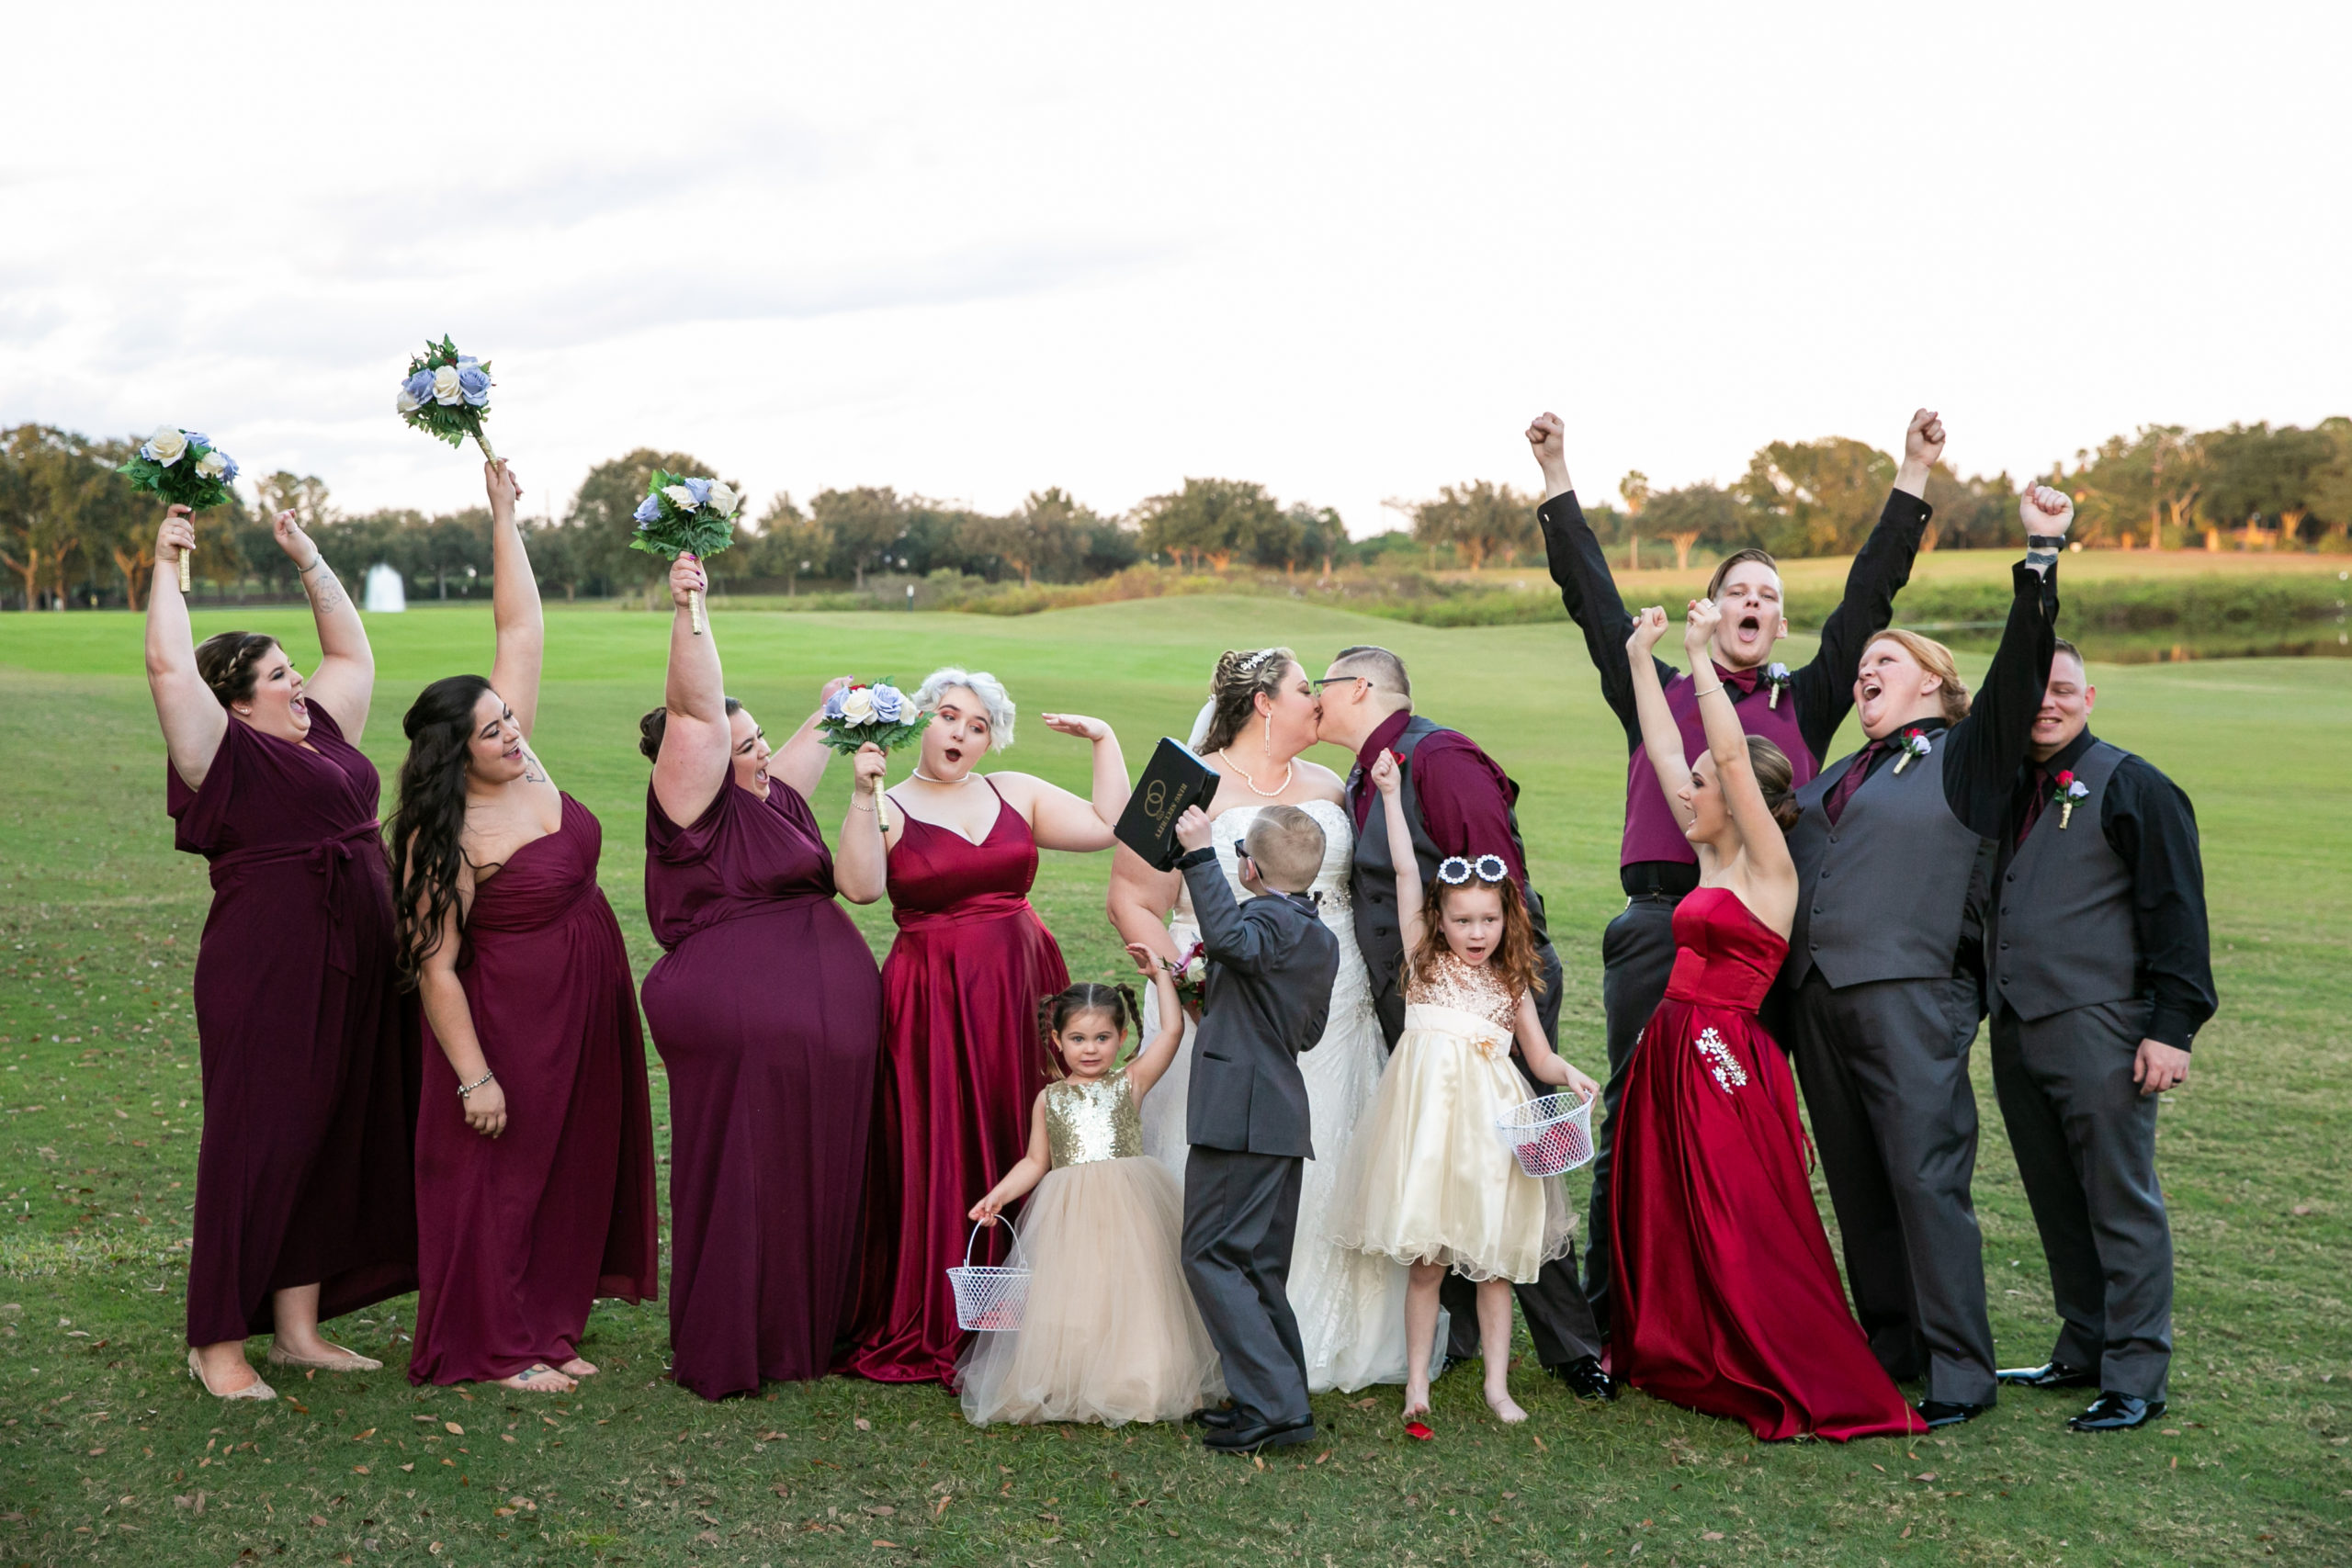 Fun bridal party picture with bridal party in burgundy for vineyard inspired wedding